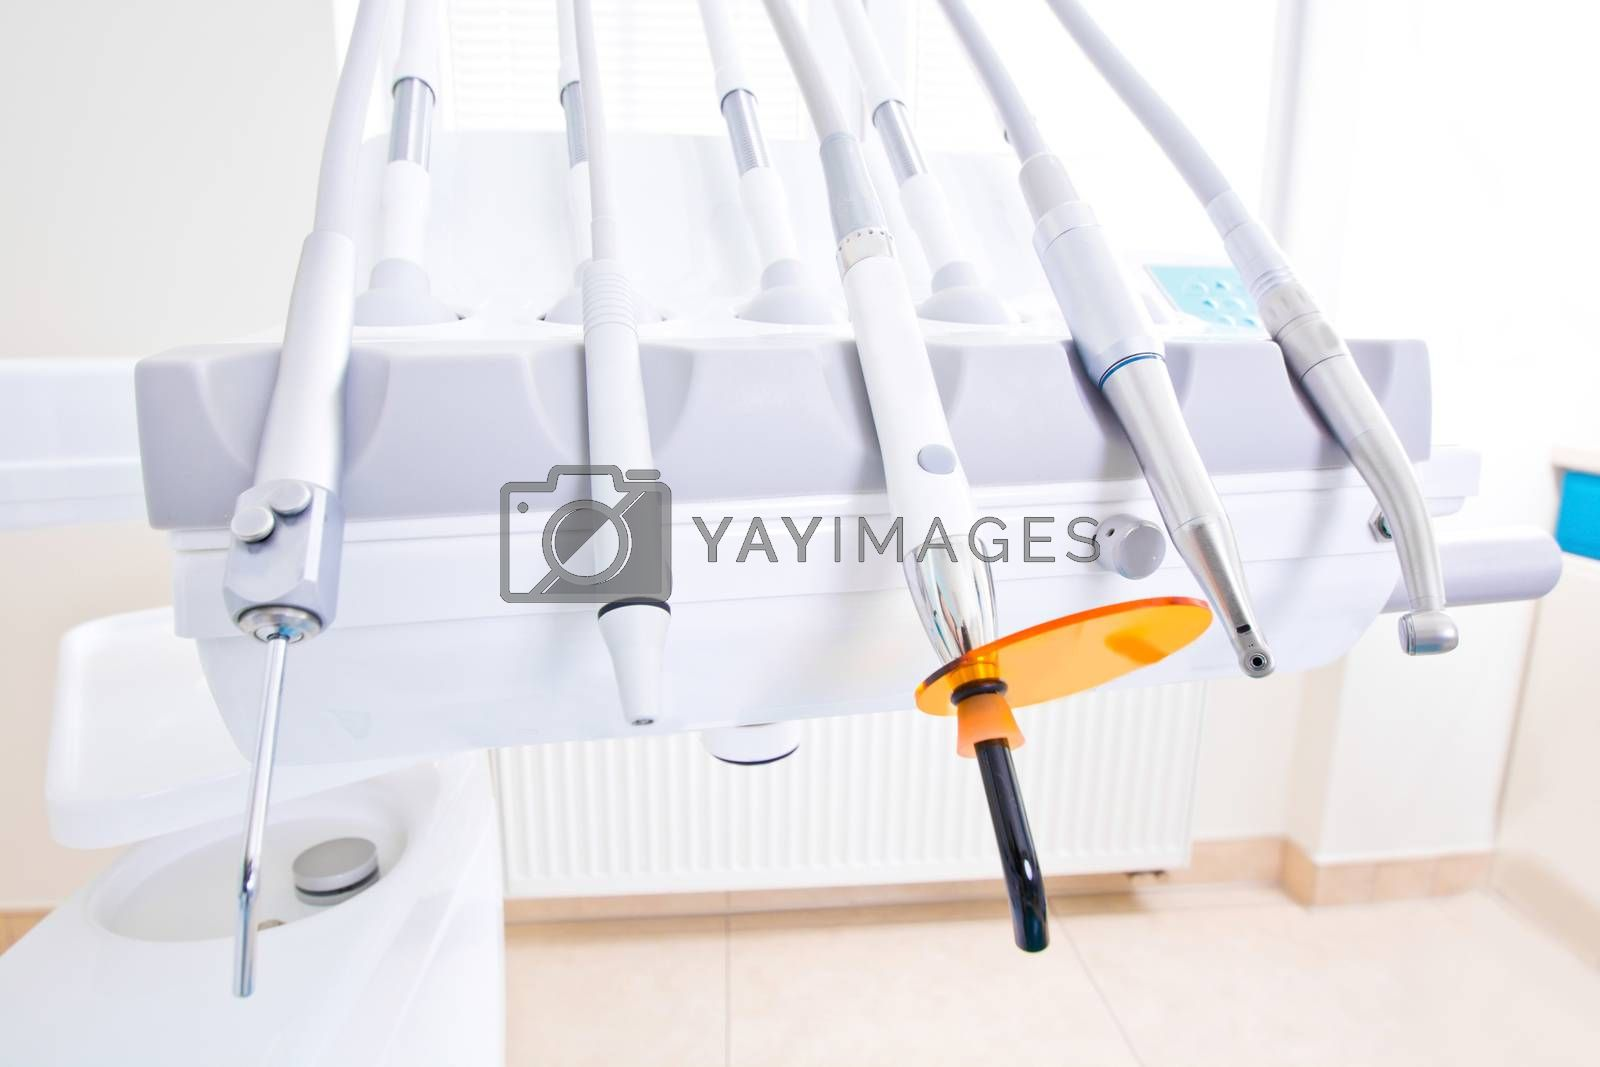 Professional Dentist tools in the dental office. Dental Hygiene and Health conceptual image.